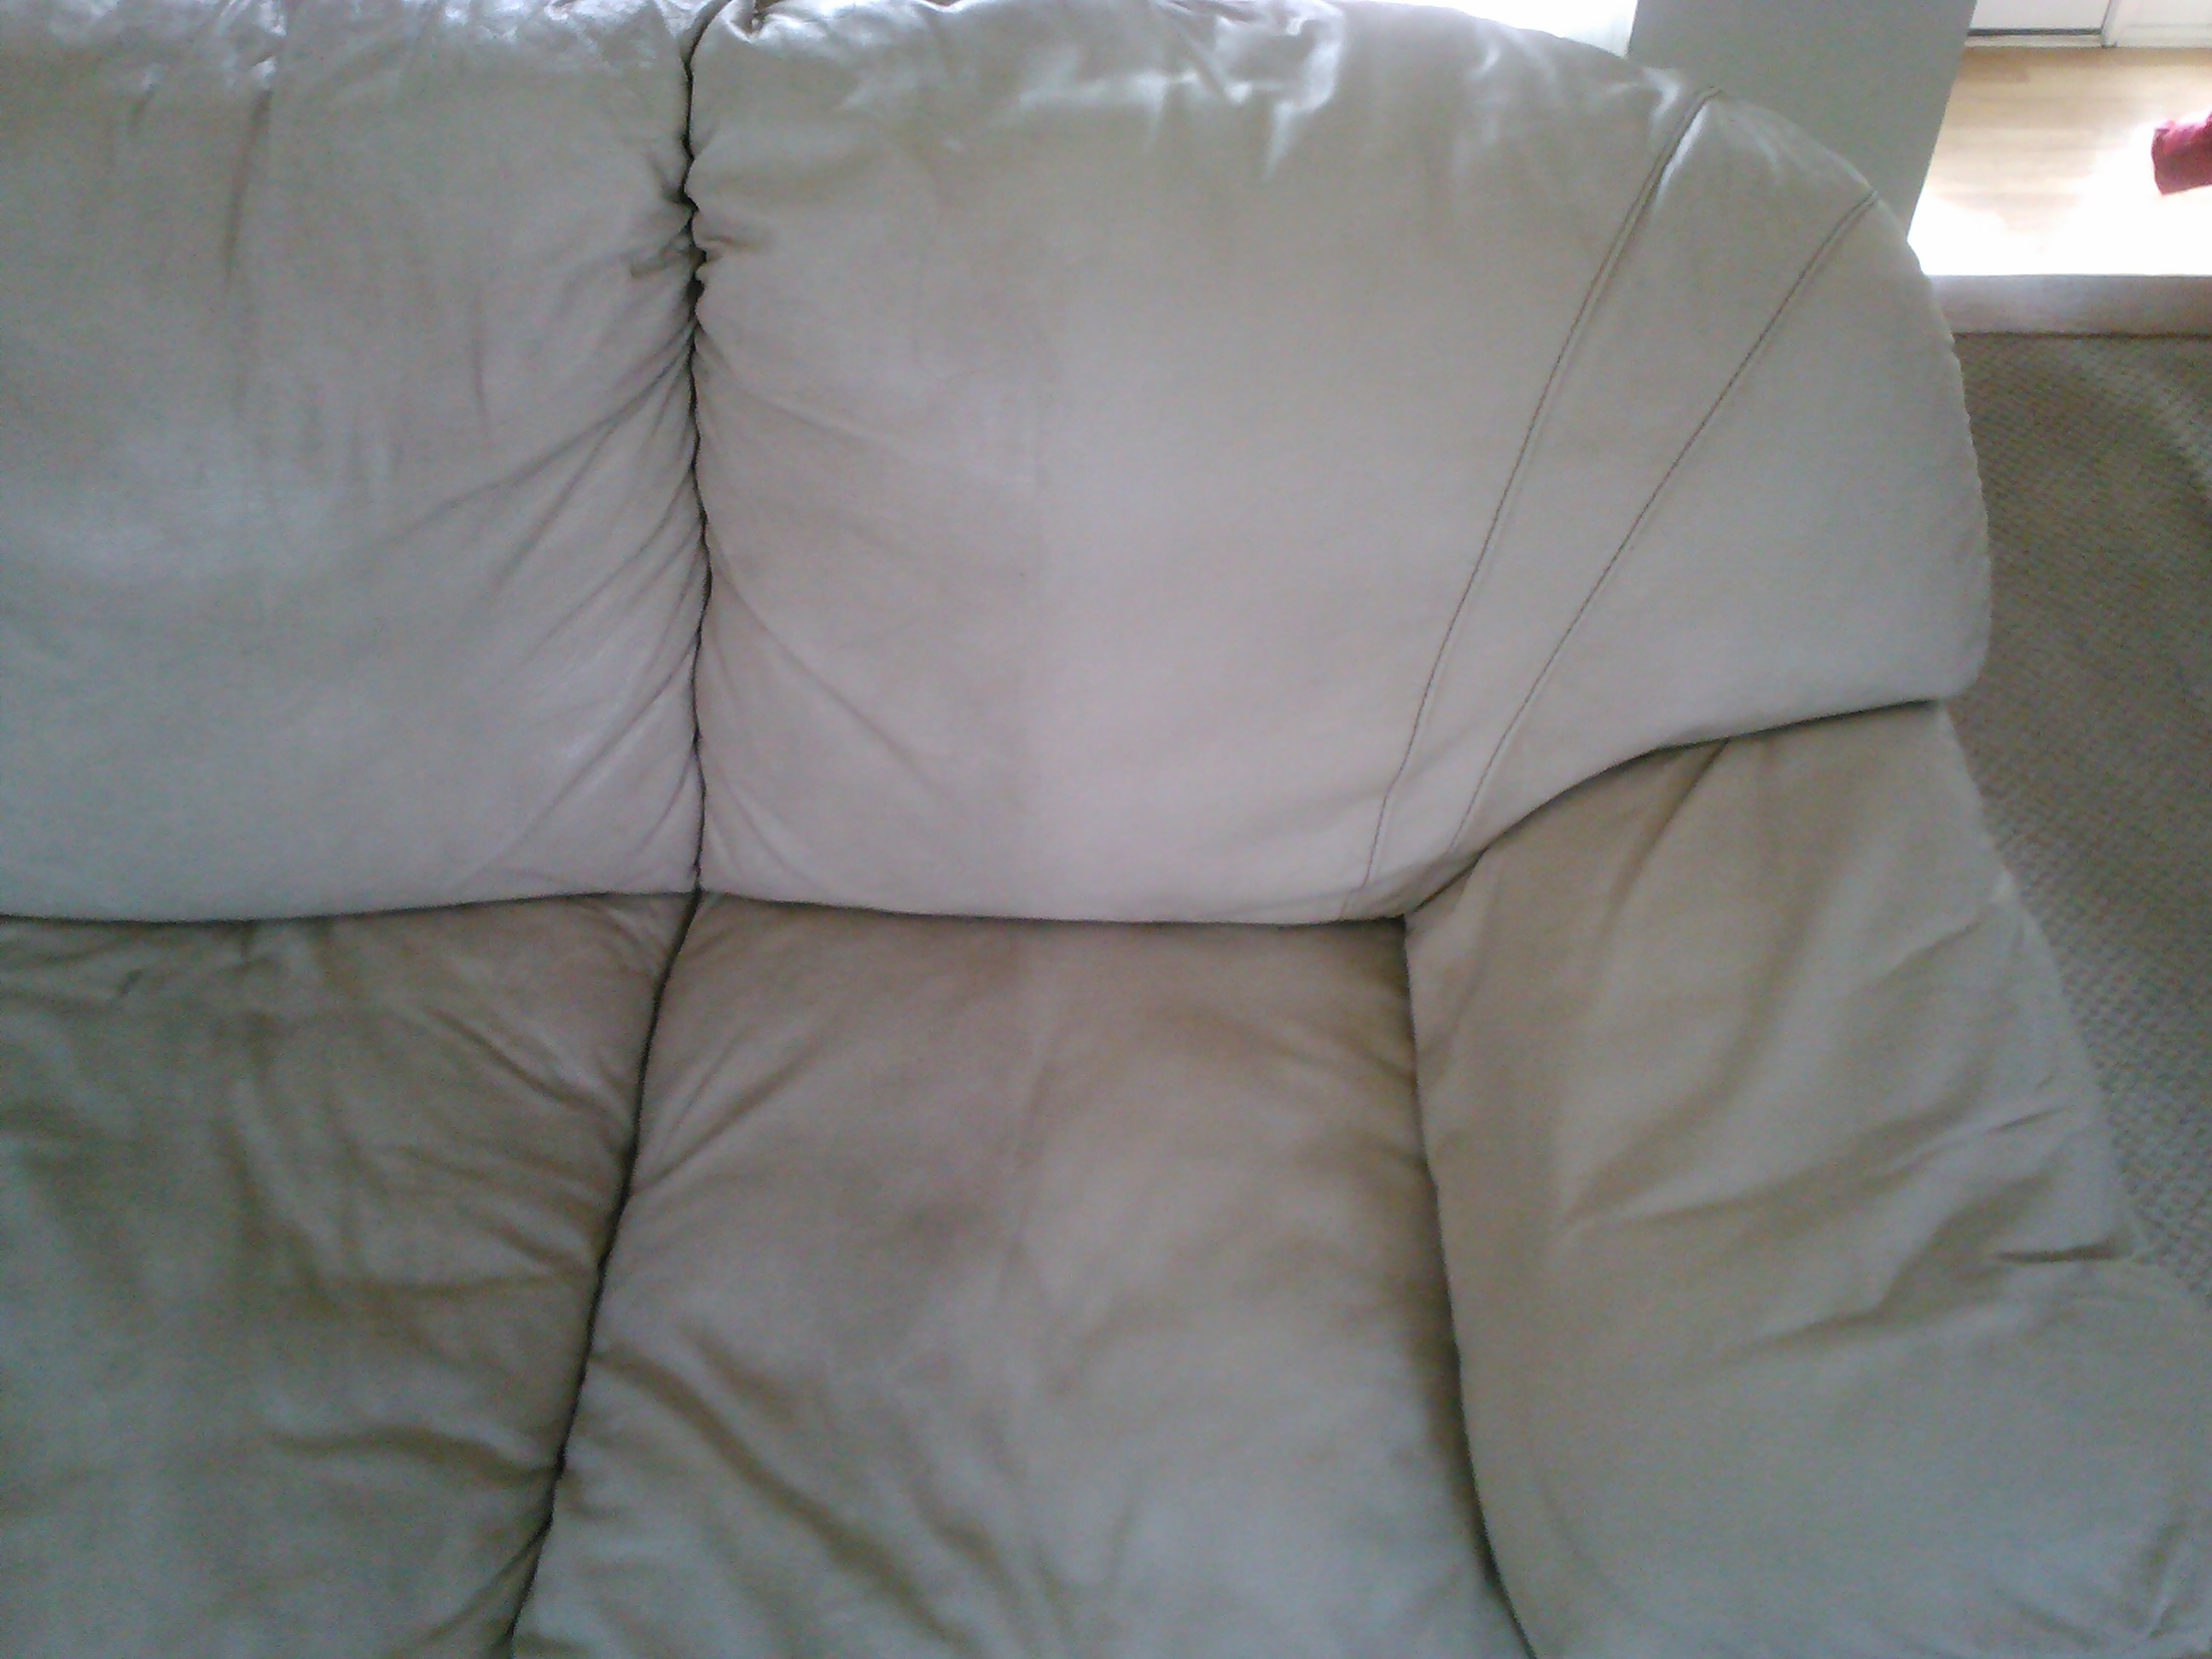 sofa cleaning atlanta lazy boy lancer power most recommended carpet cleaner covington ga conyers